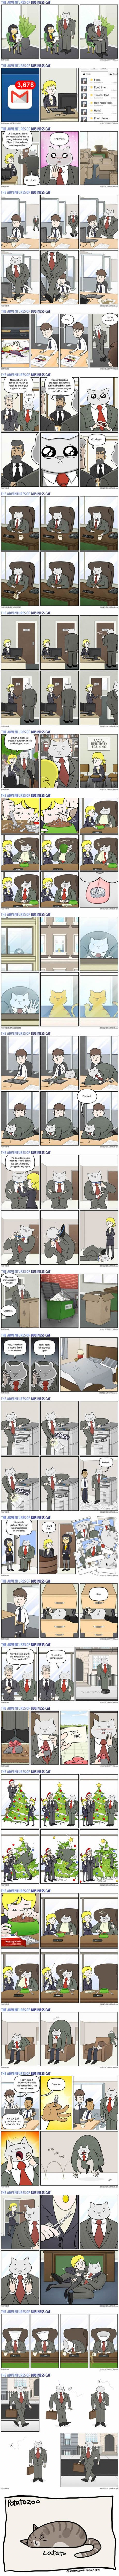 27 comics showing this is how your office would look if your boss was a cat